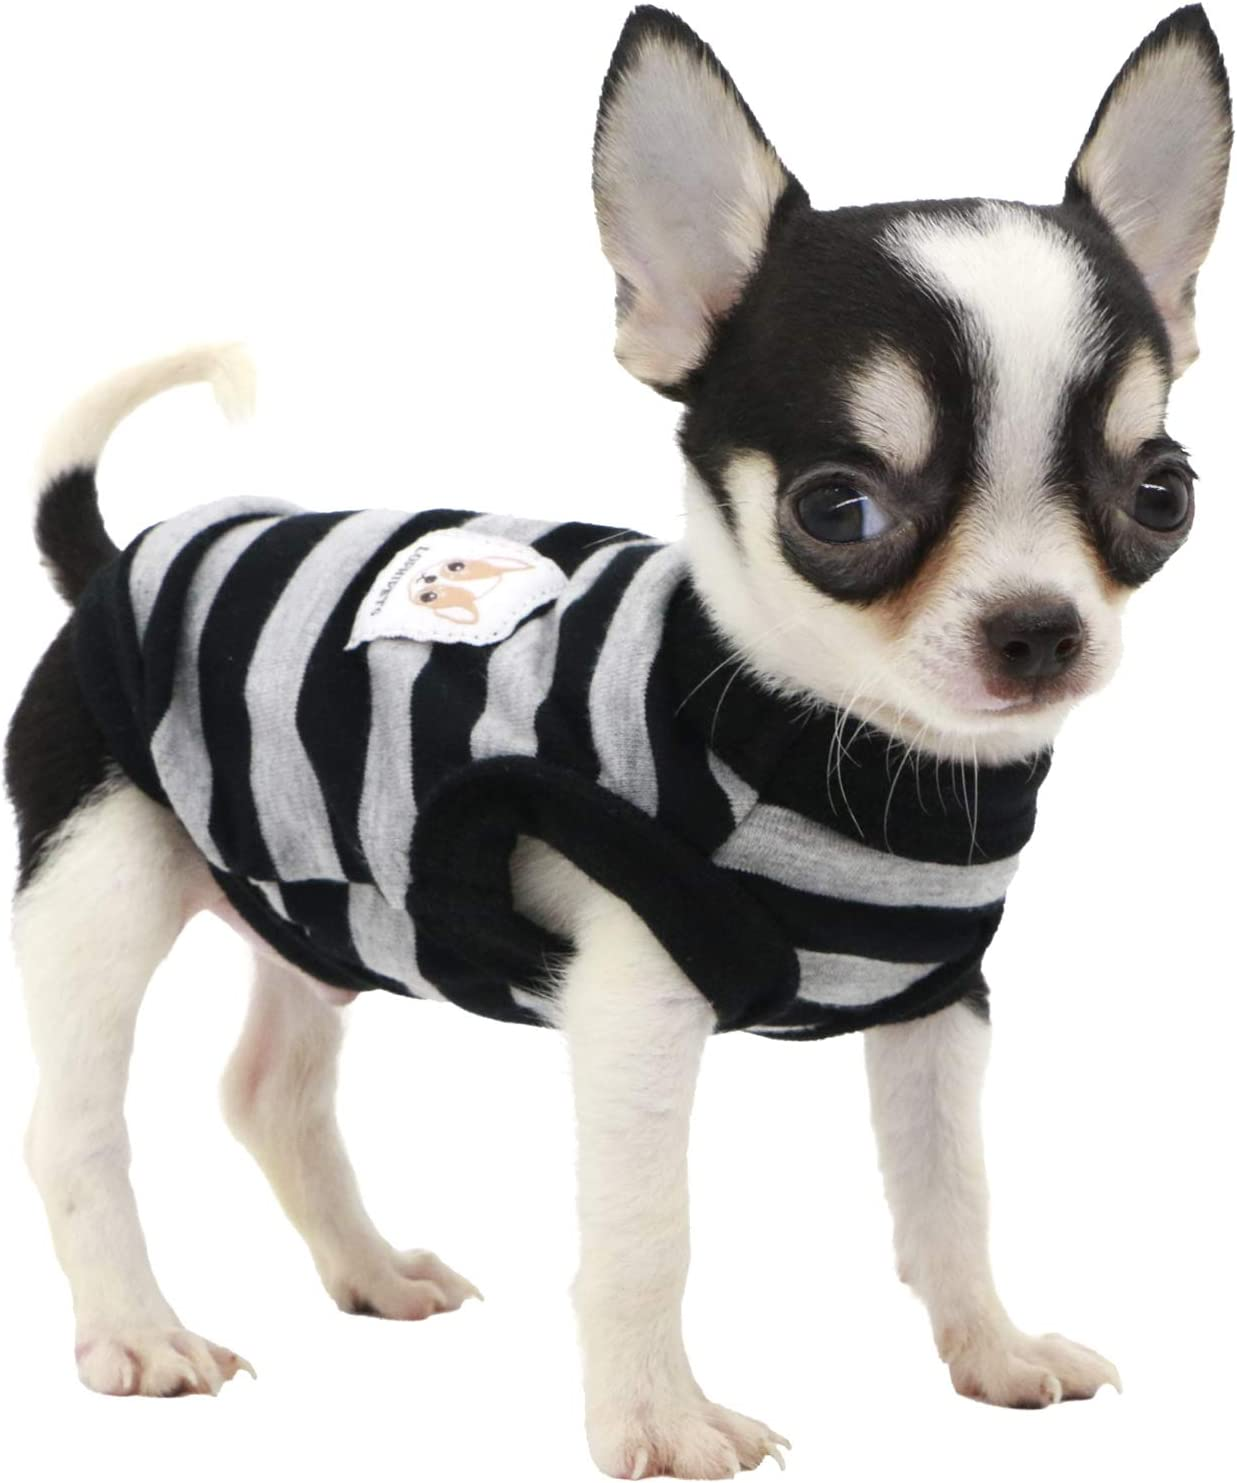 Lophipets 100/% Cotton Striped Dog Shirts for Puppy Small Dogs Chihuahua